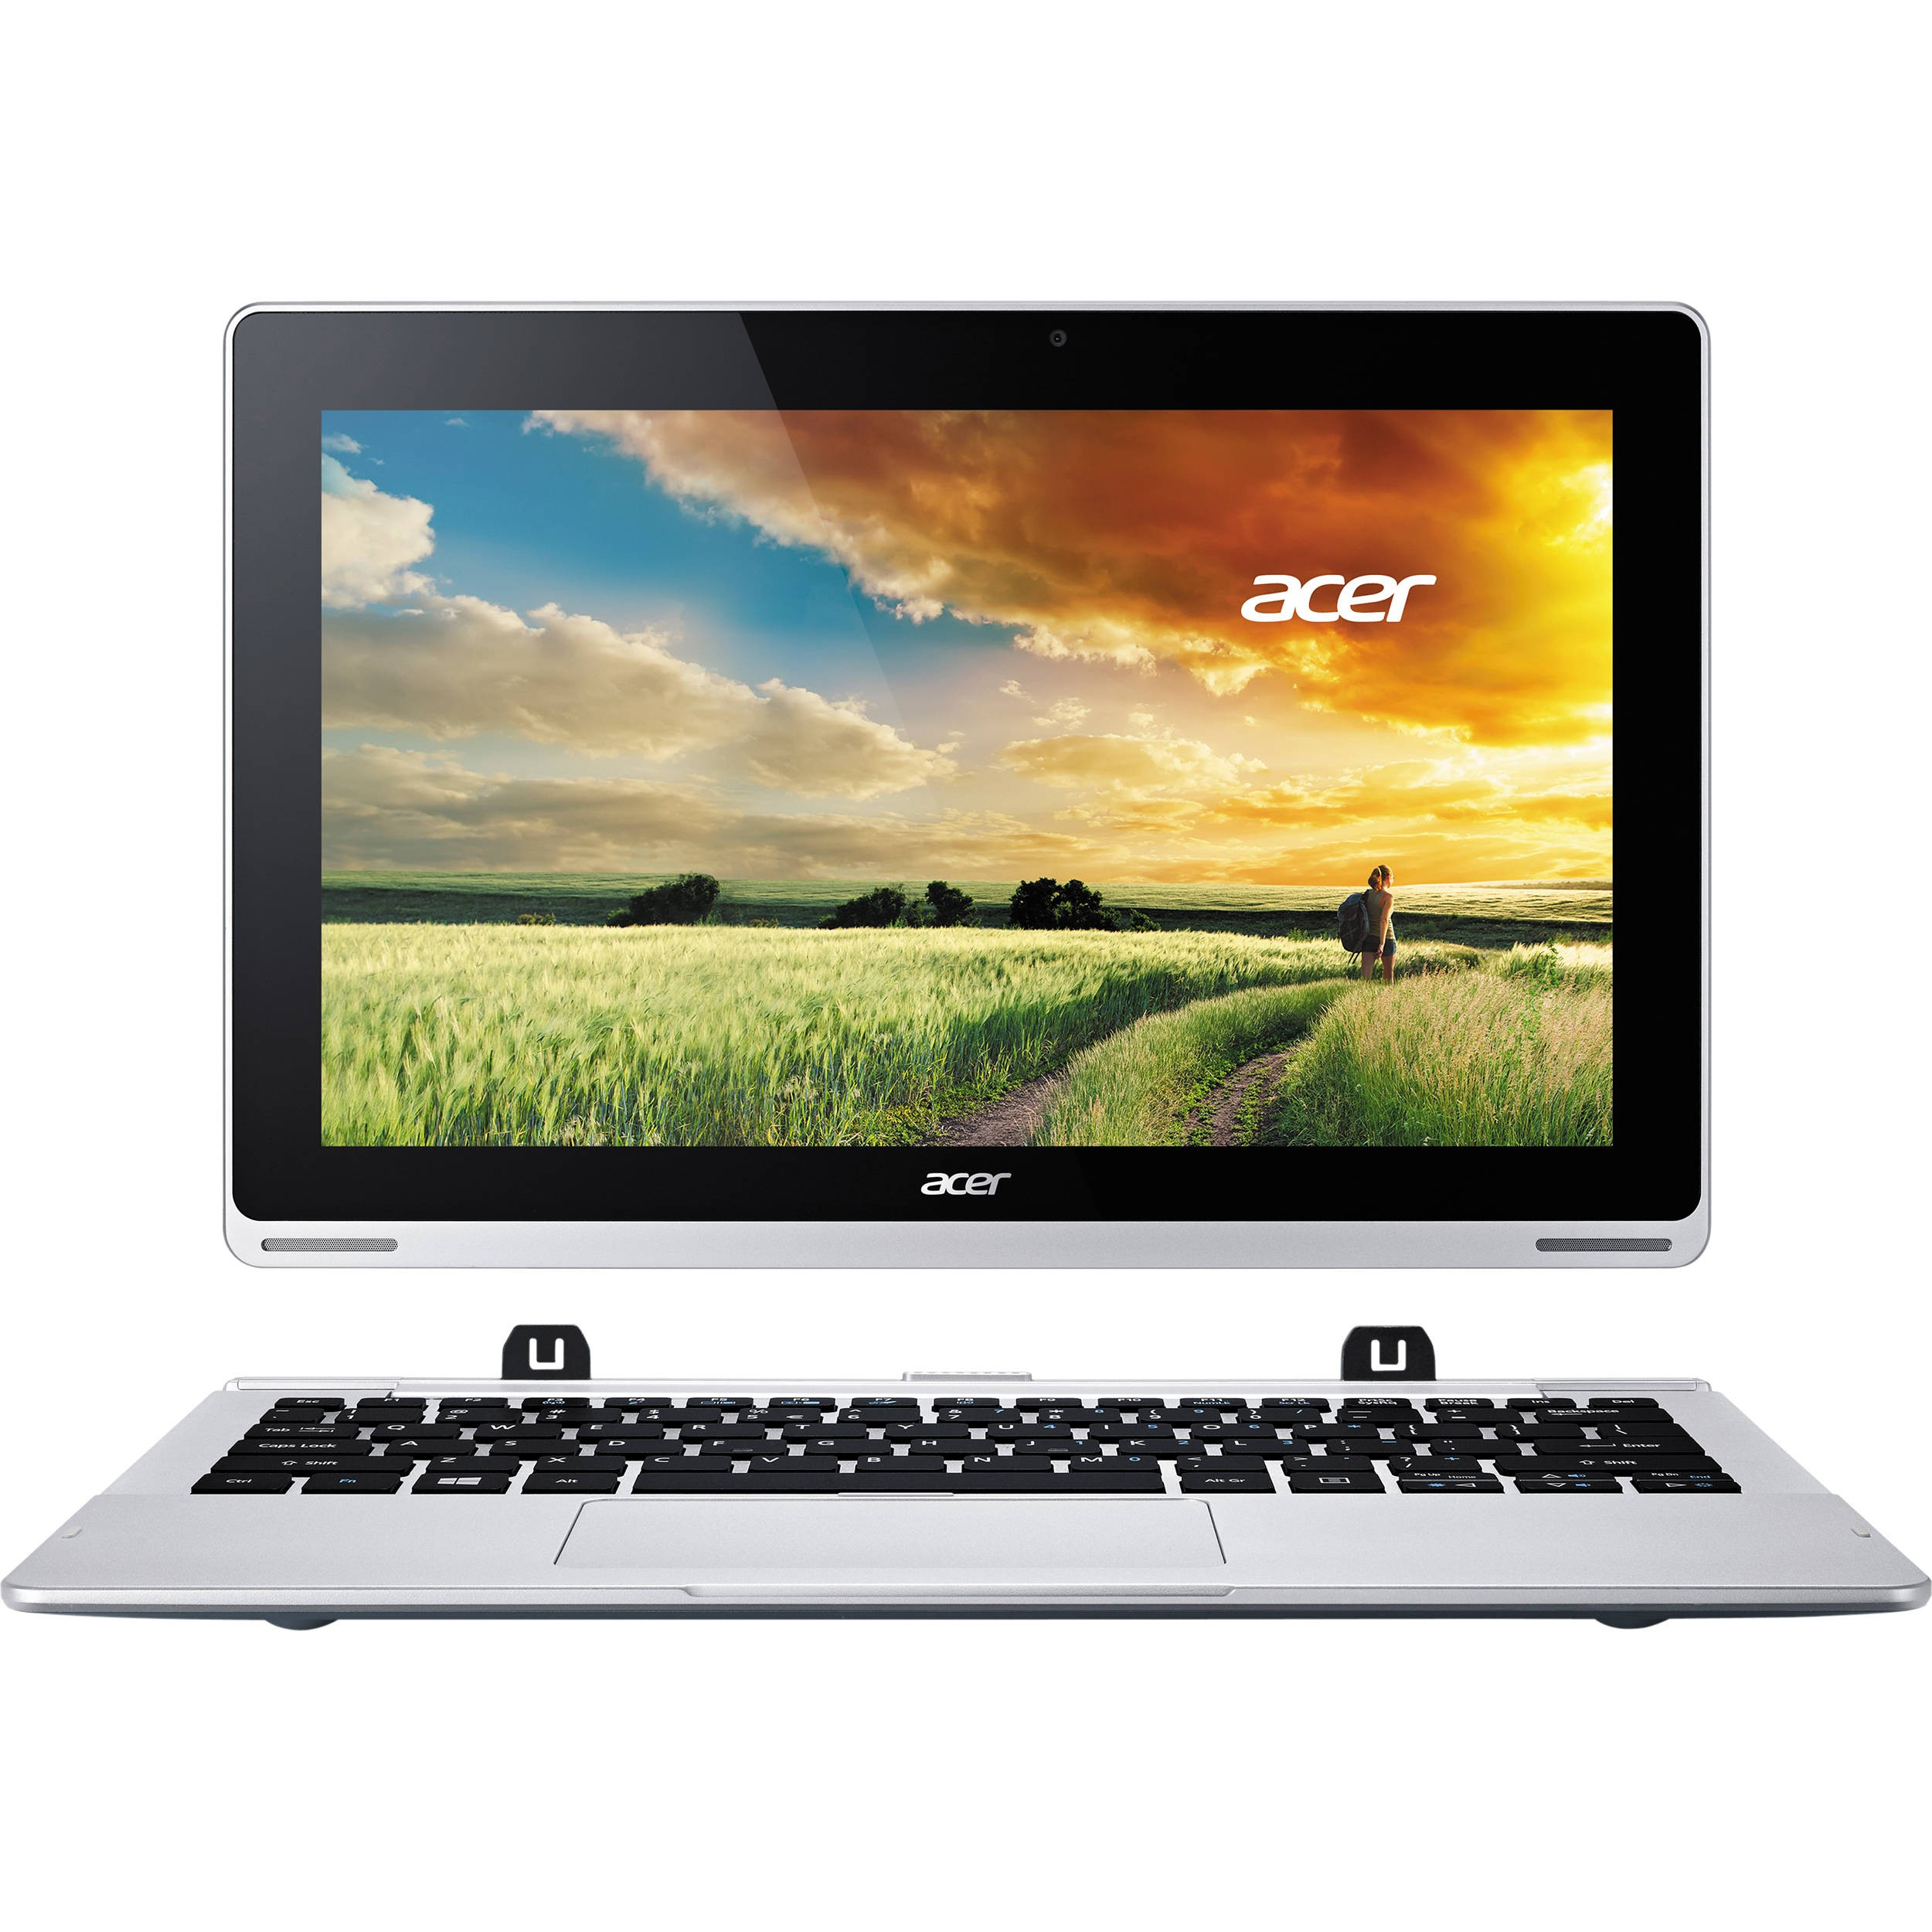 Acer Aspire Switch SW5-171 LCD